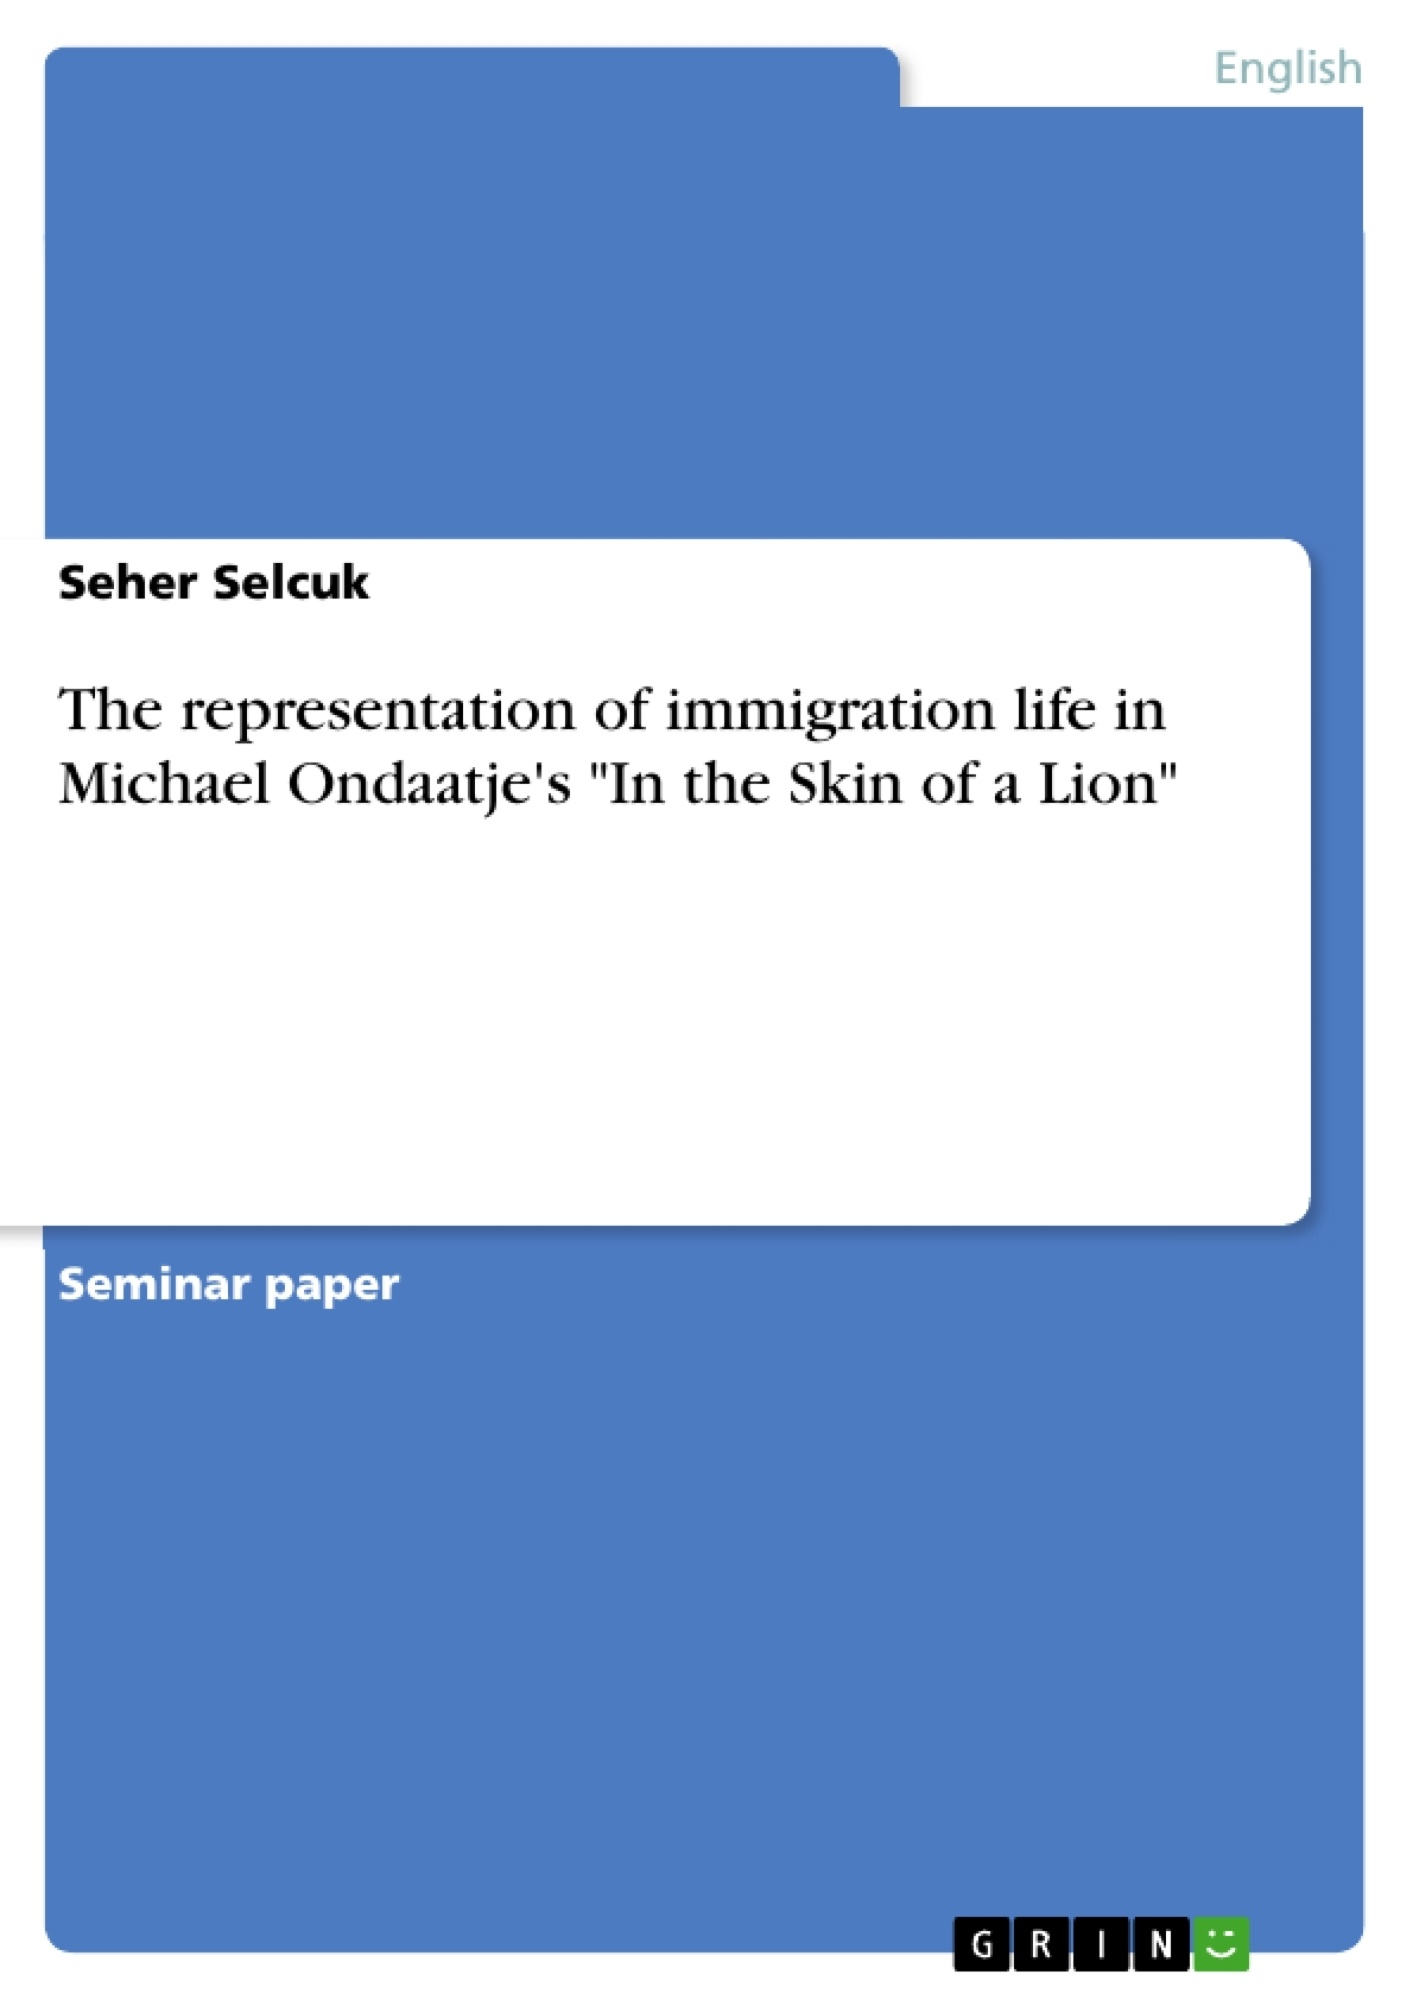 """Title: The representation of immigration life in Michael Ondaatje's """"In the Skin of a Lion"""""""